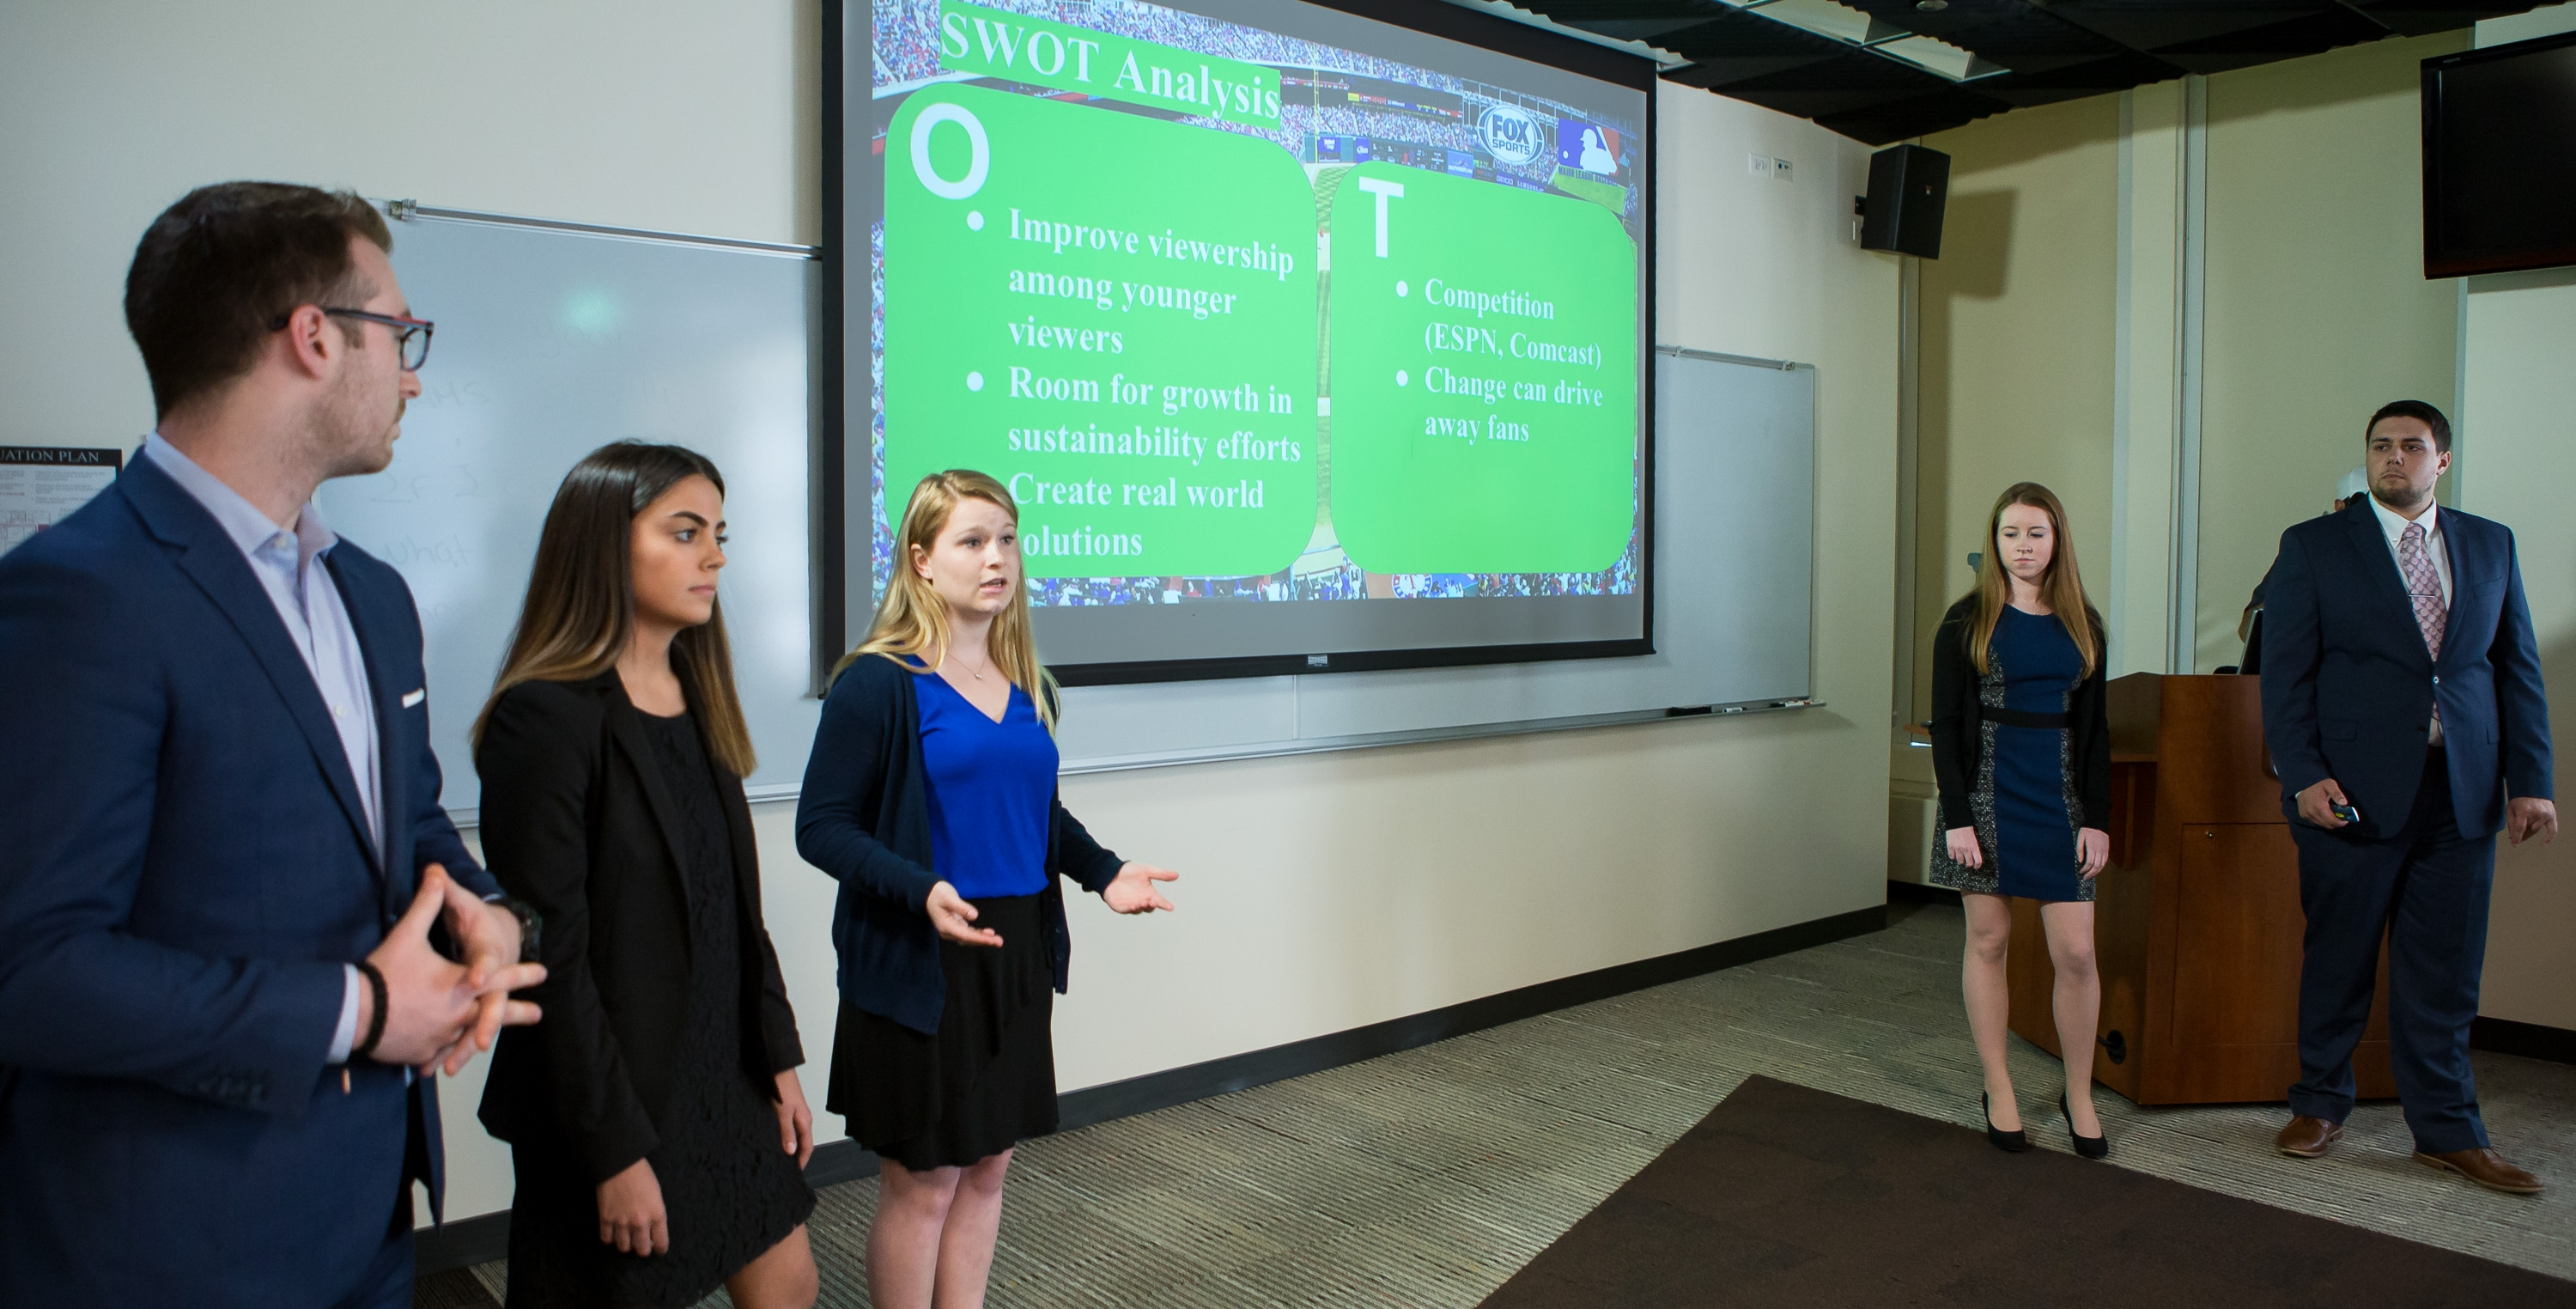 Students in PRAD 393, Special Topics in Public Relations and Advertising, present campaign plan ideas to FOX Sports, 21st Century Fox and Major League Baseball executives, Monday, June 5, 2017. (DePaul University/Jeff Carrion)